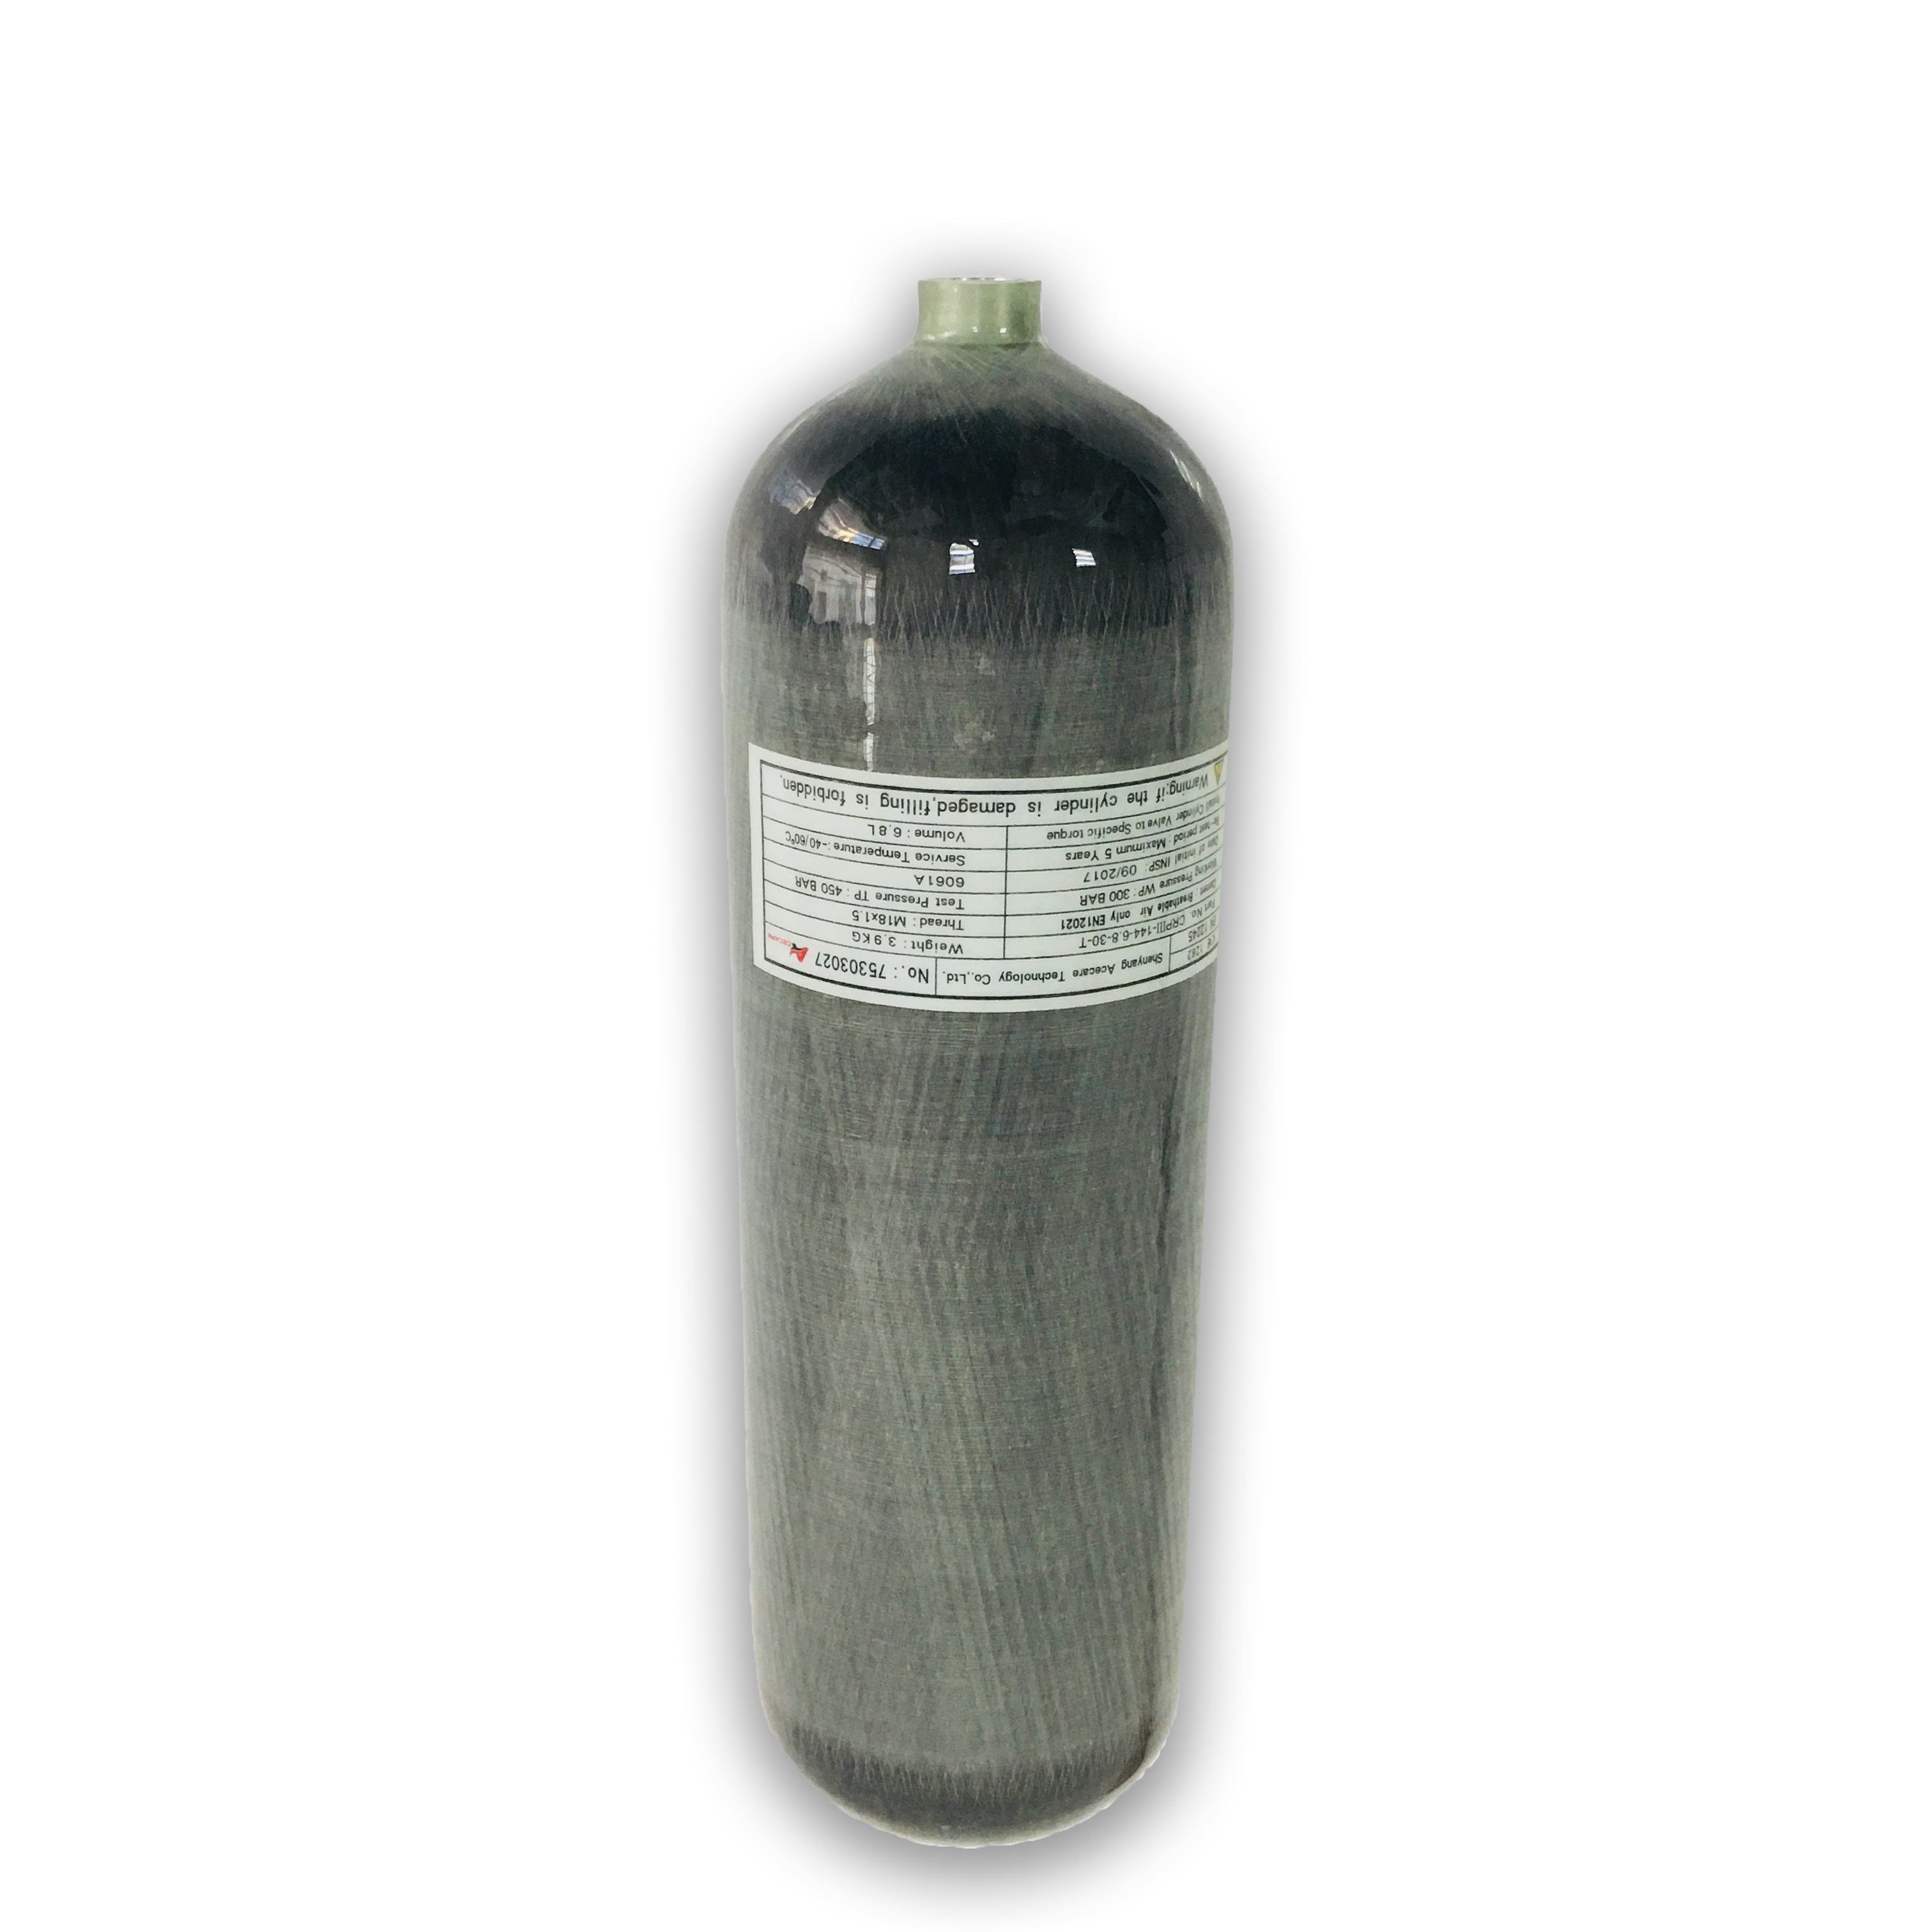 AC168 CE 6.8L Air Cylinder Compressed Air Bottle 4500PSI 30Mpa High Pressure SCBA Tank Diving Bottle 4500PSI Drop Shipping